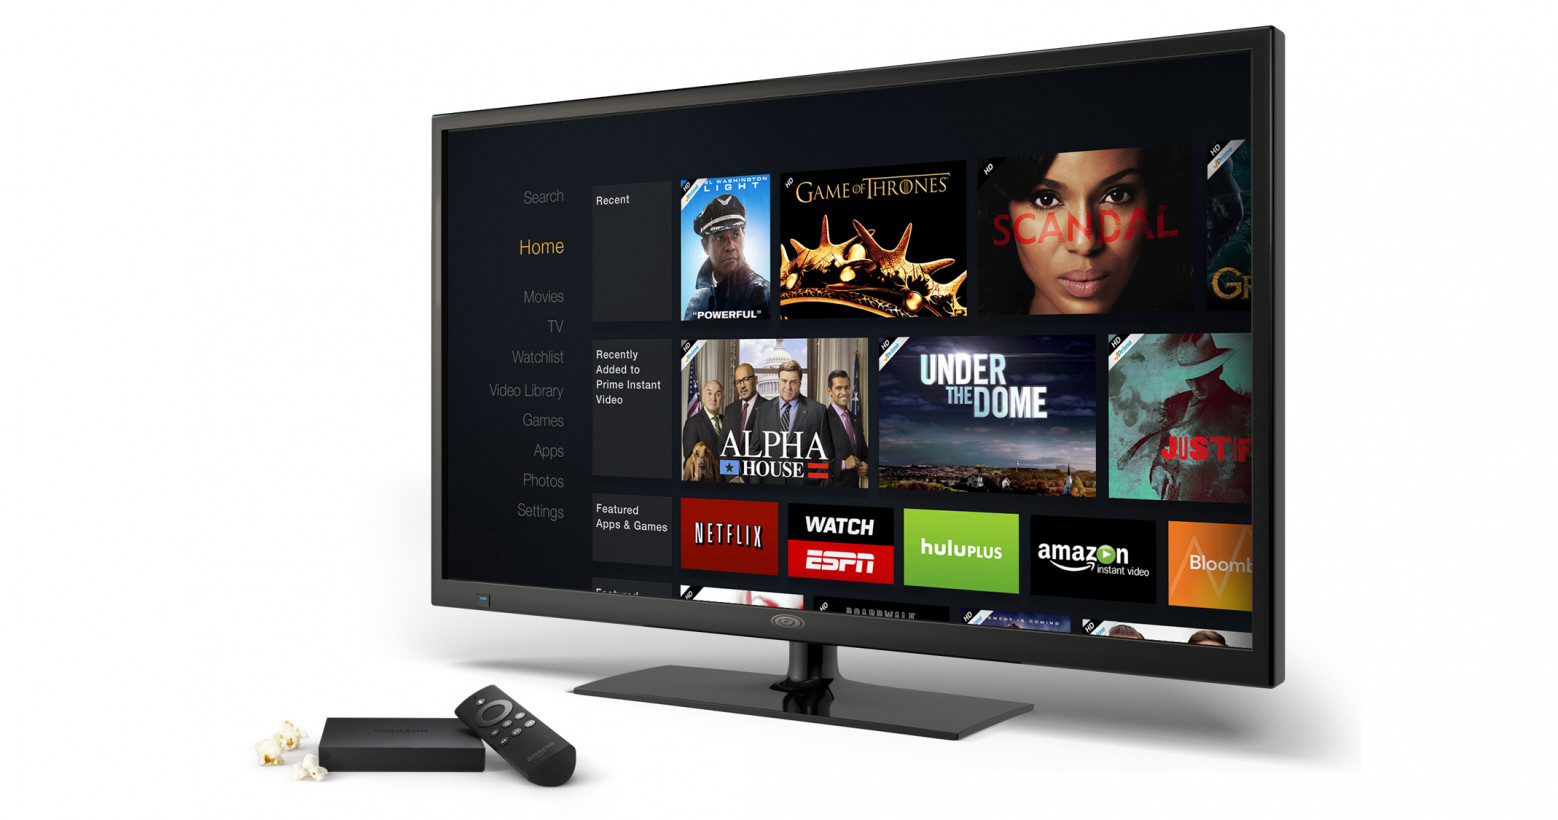 Amazon is reportedly building a free streaming video service for Fire TV owners